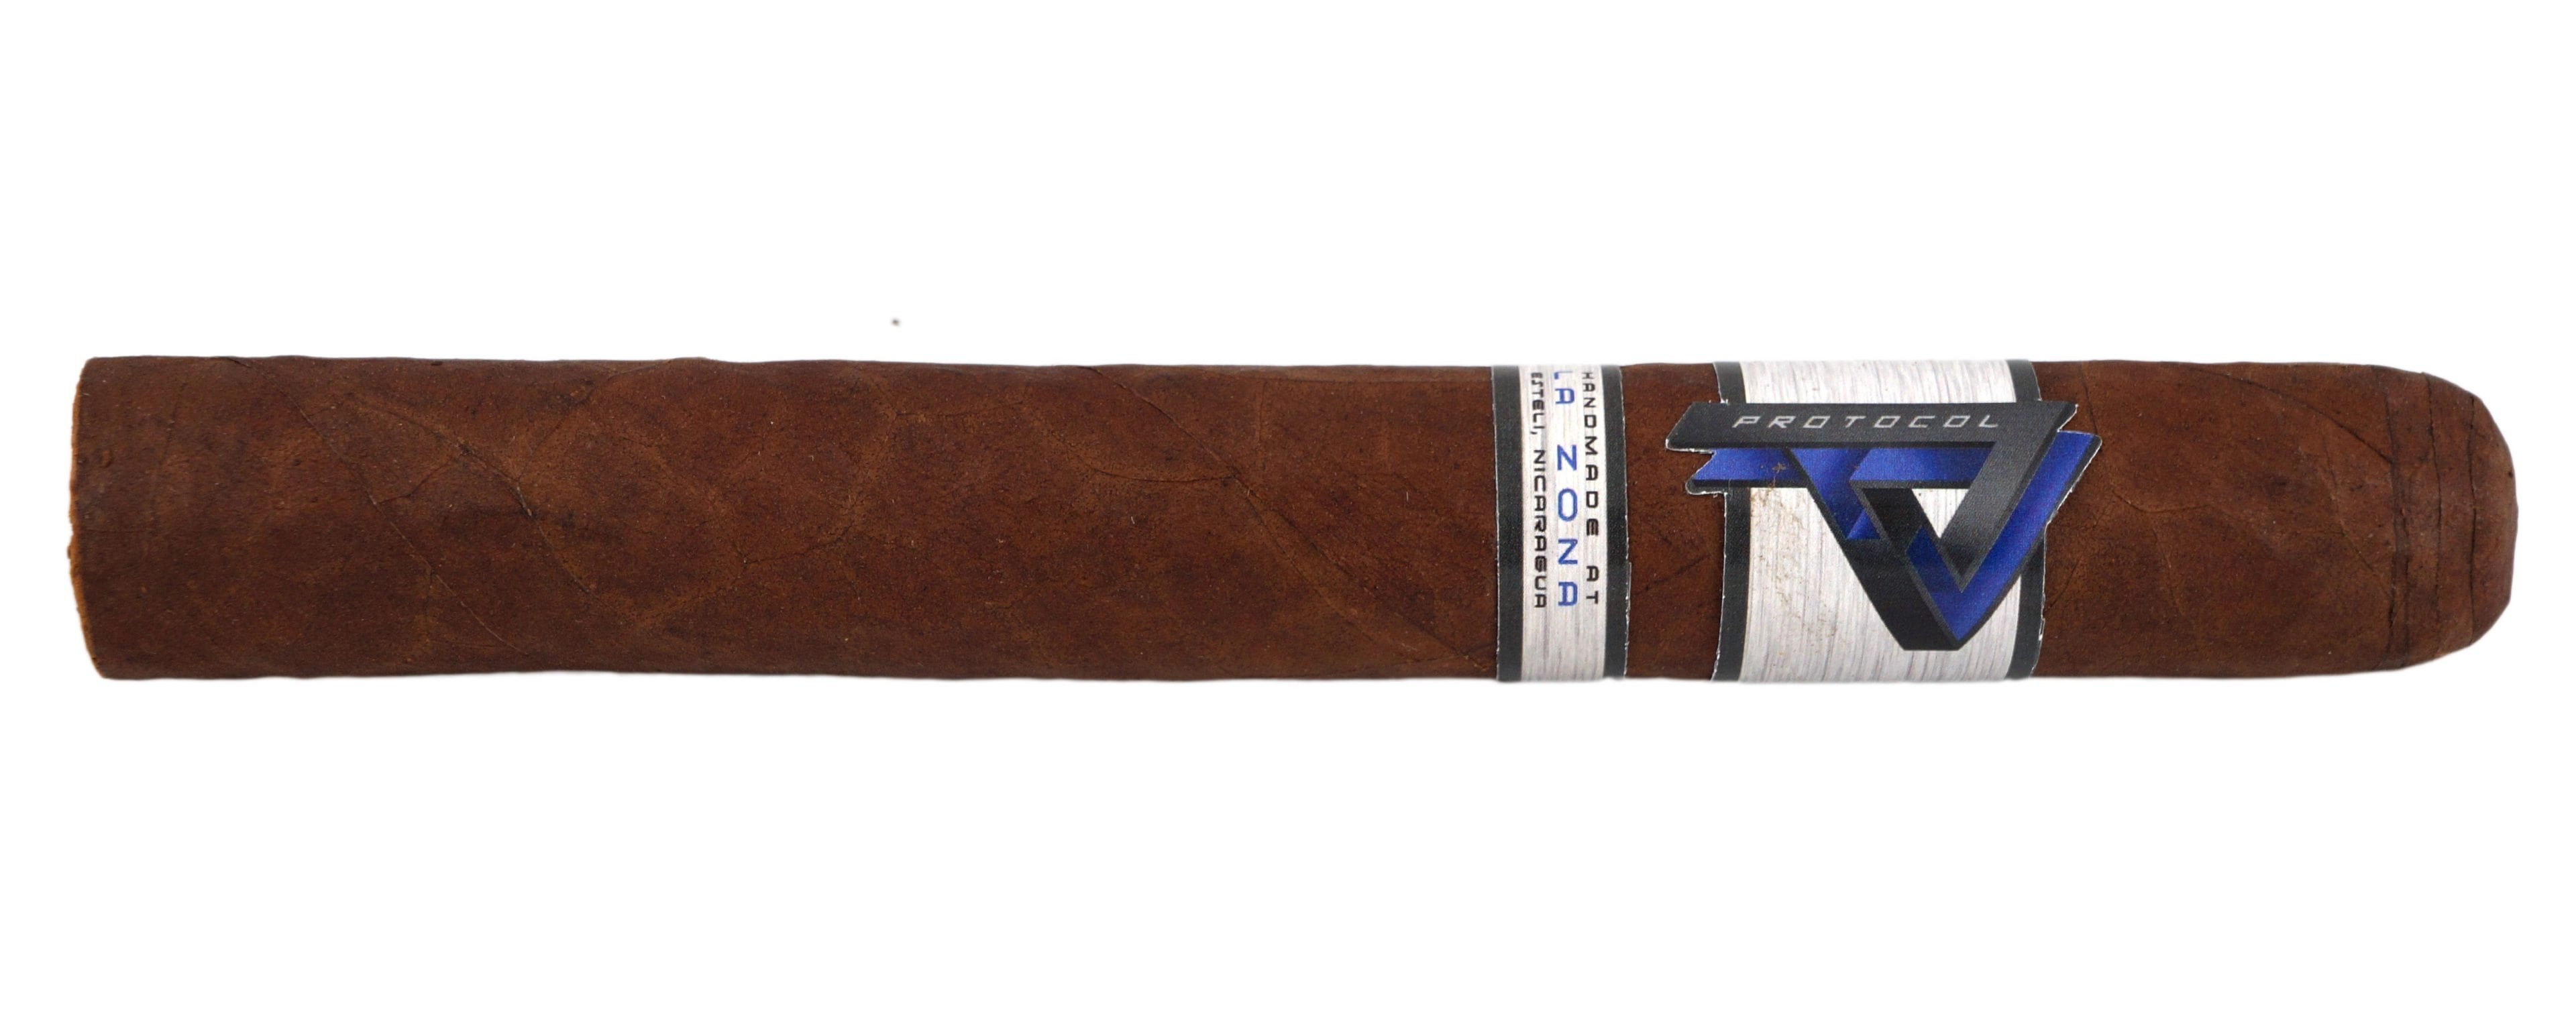 Blind Cigar Review: Cubariqueno | Protocol Toro - Blind